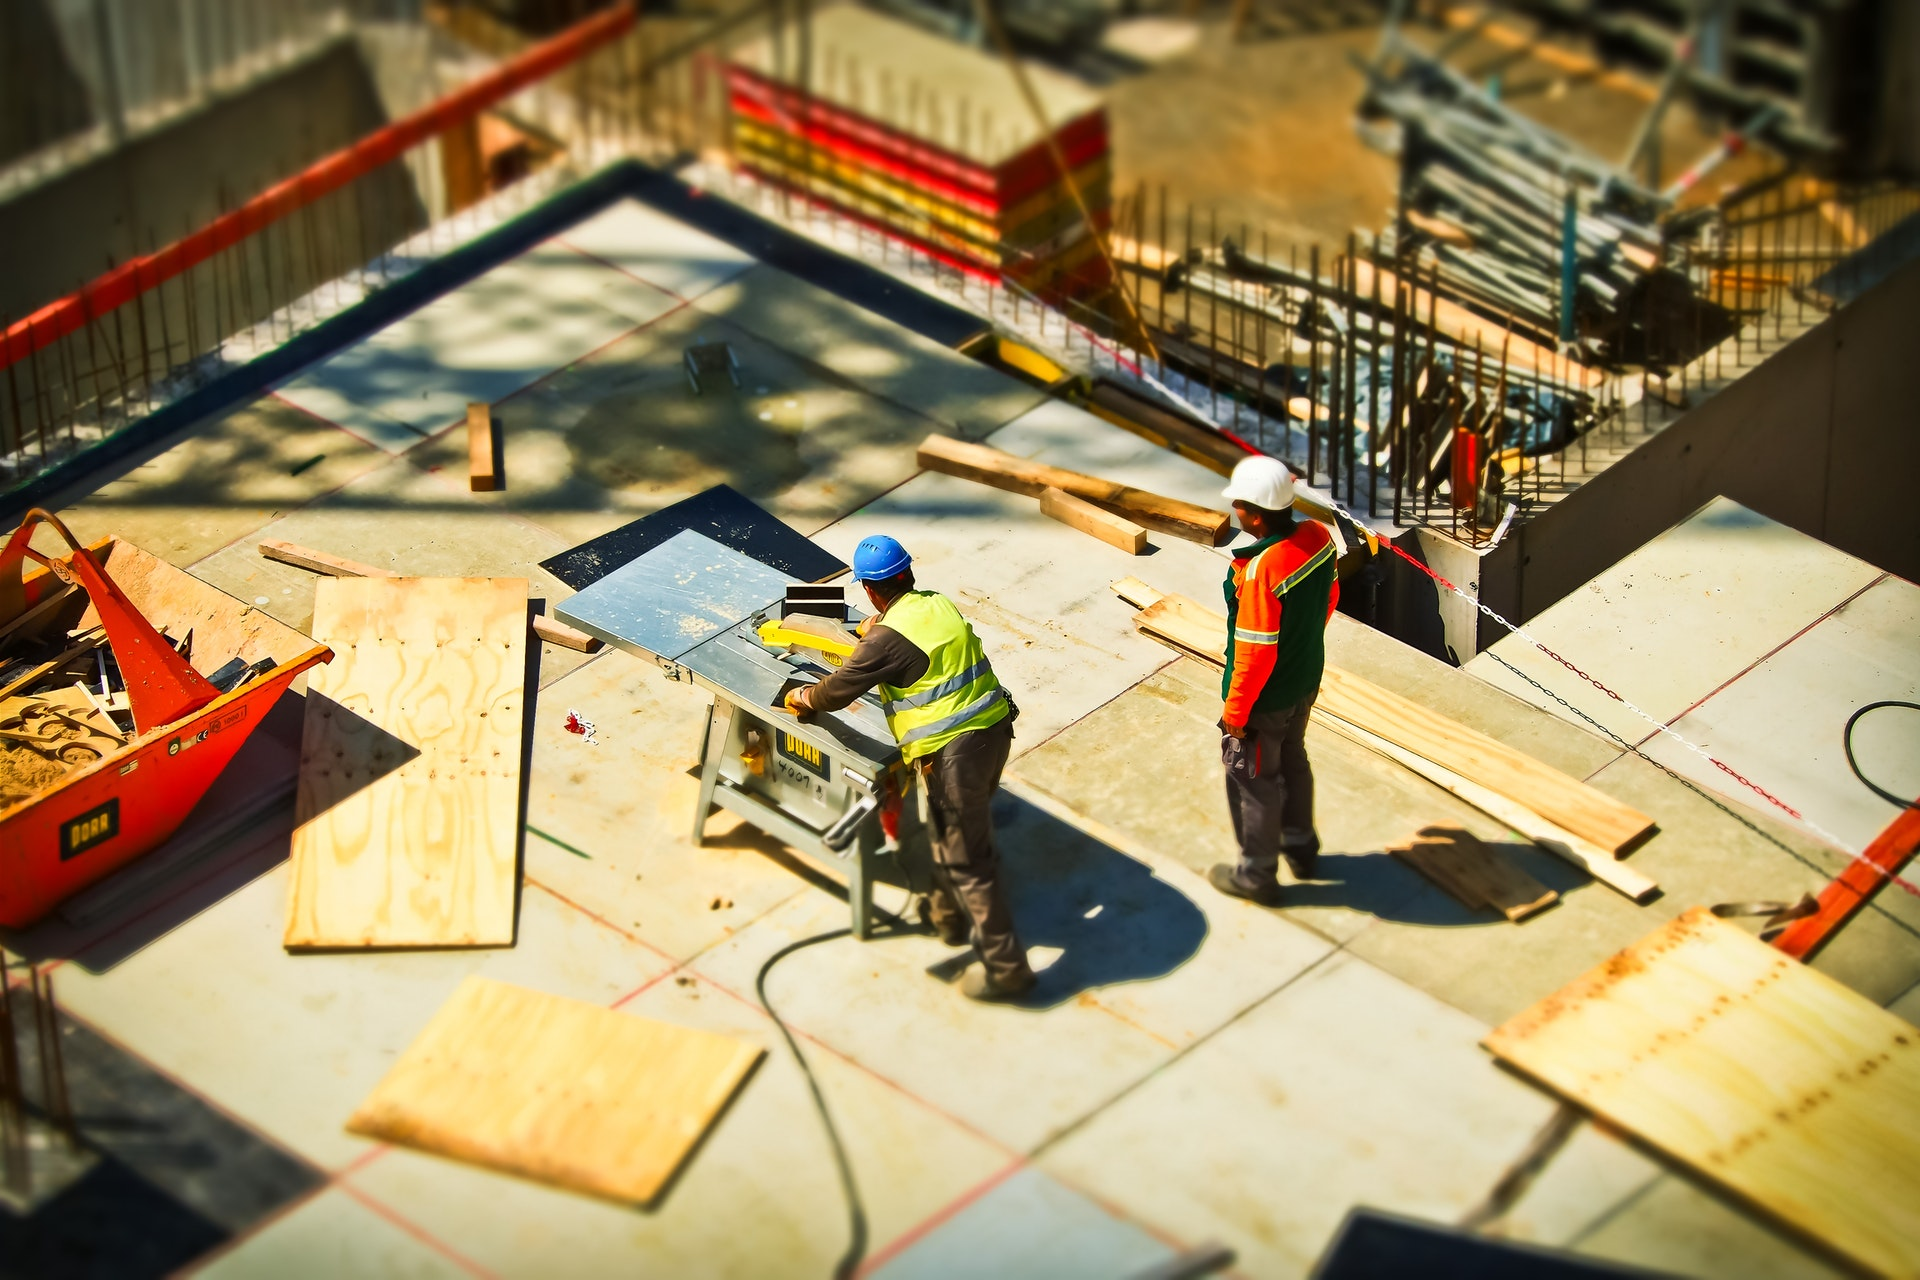 Building Construction Safety